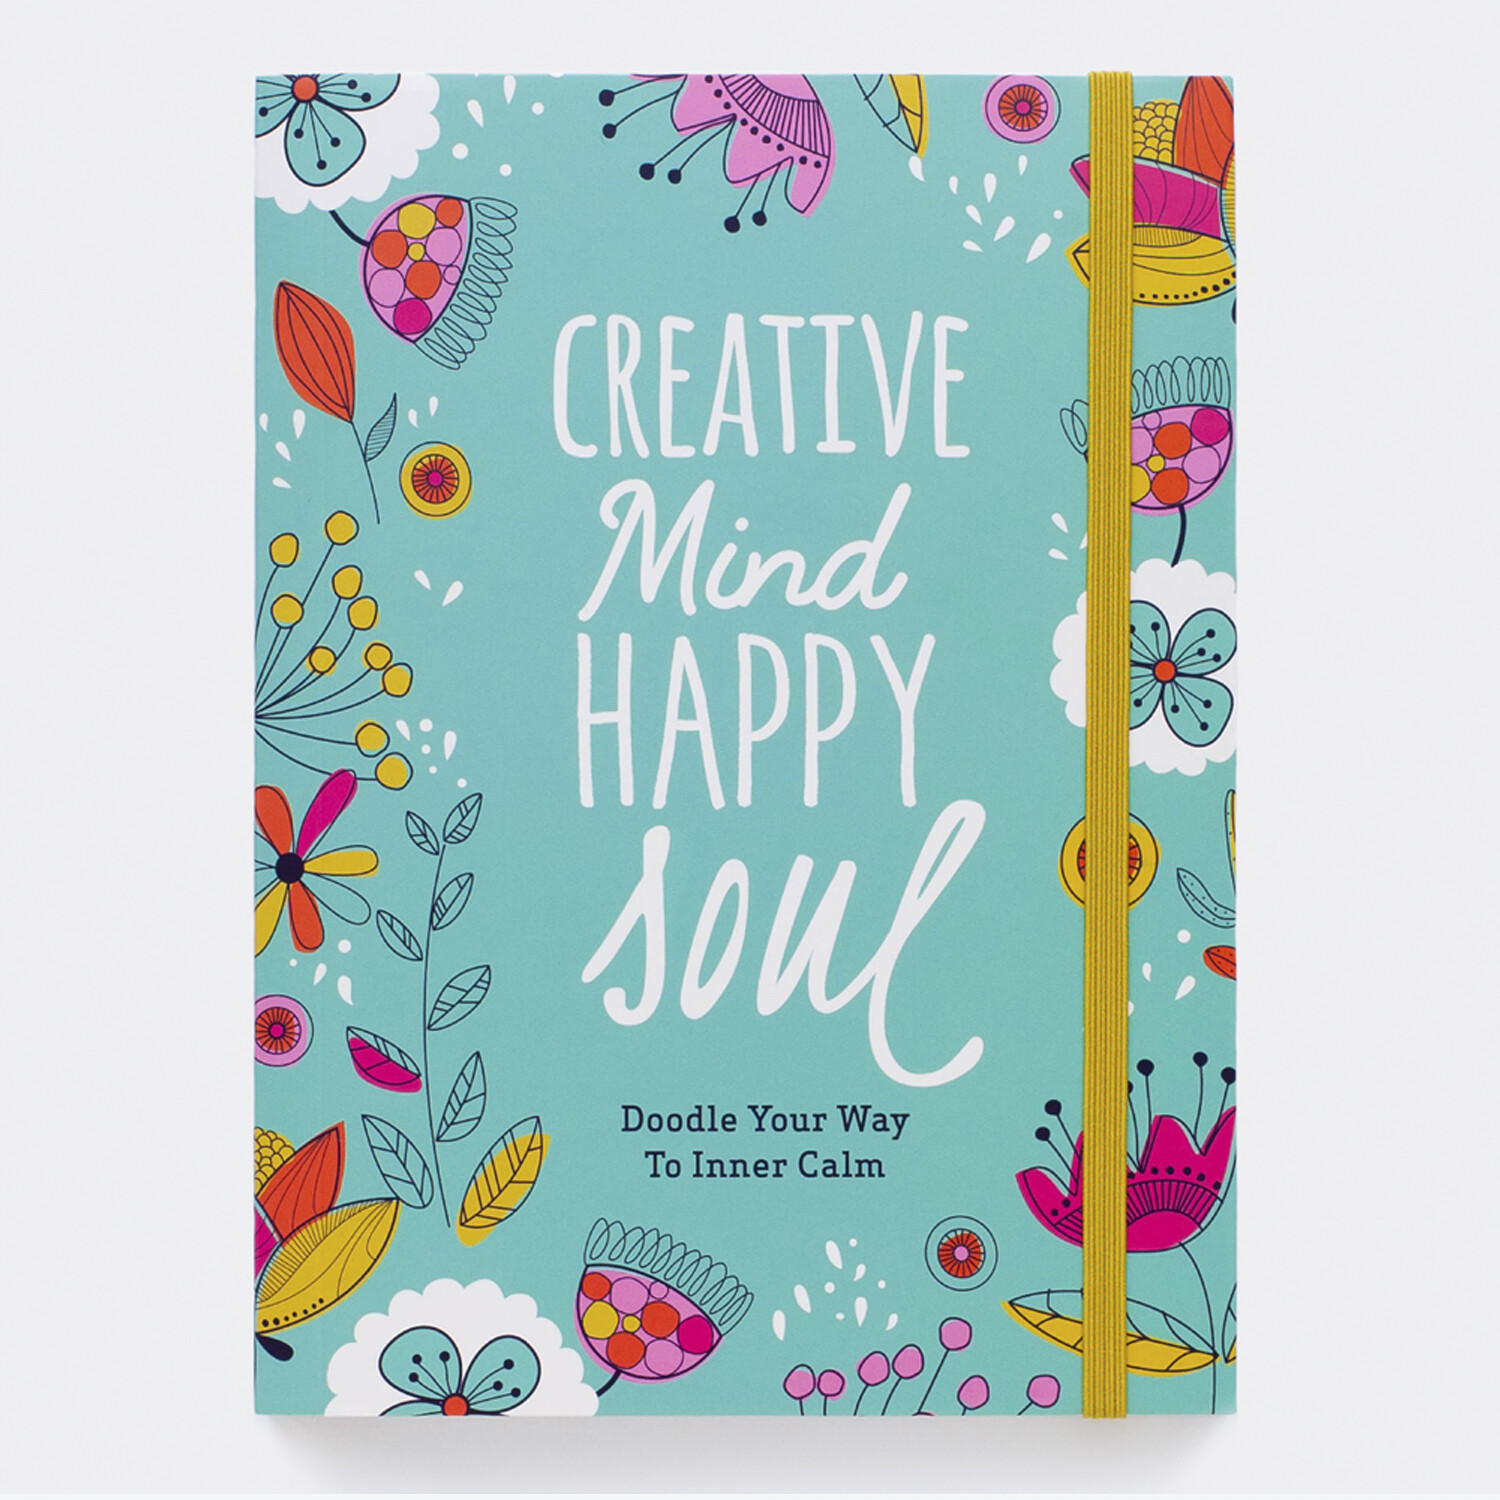 Creative Mind Happy Soul Journal